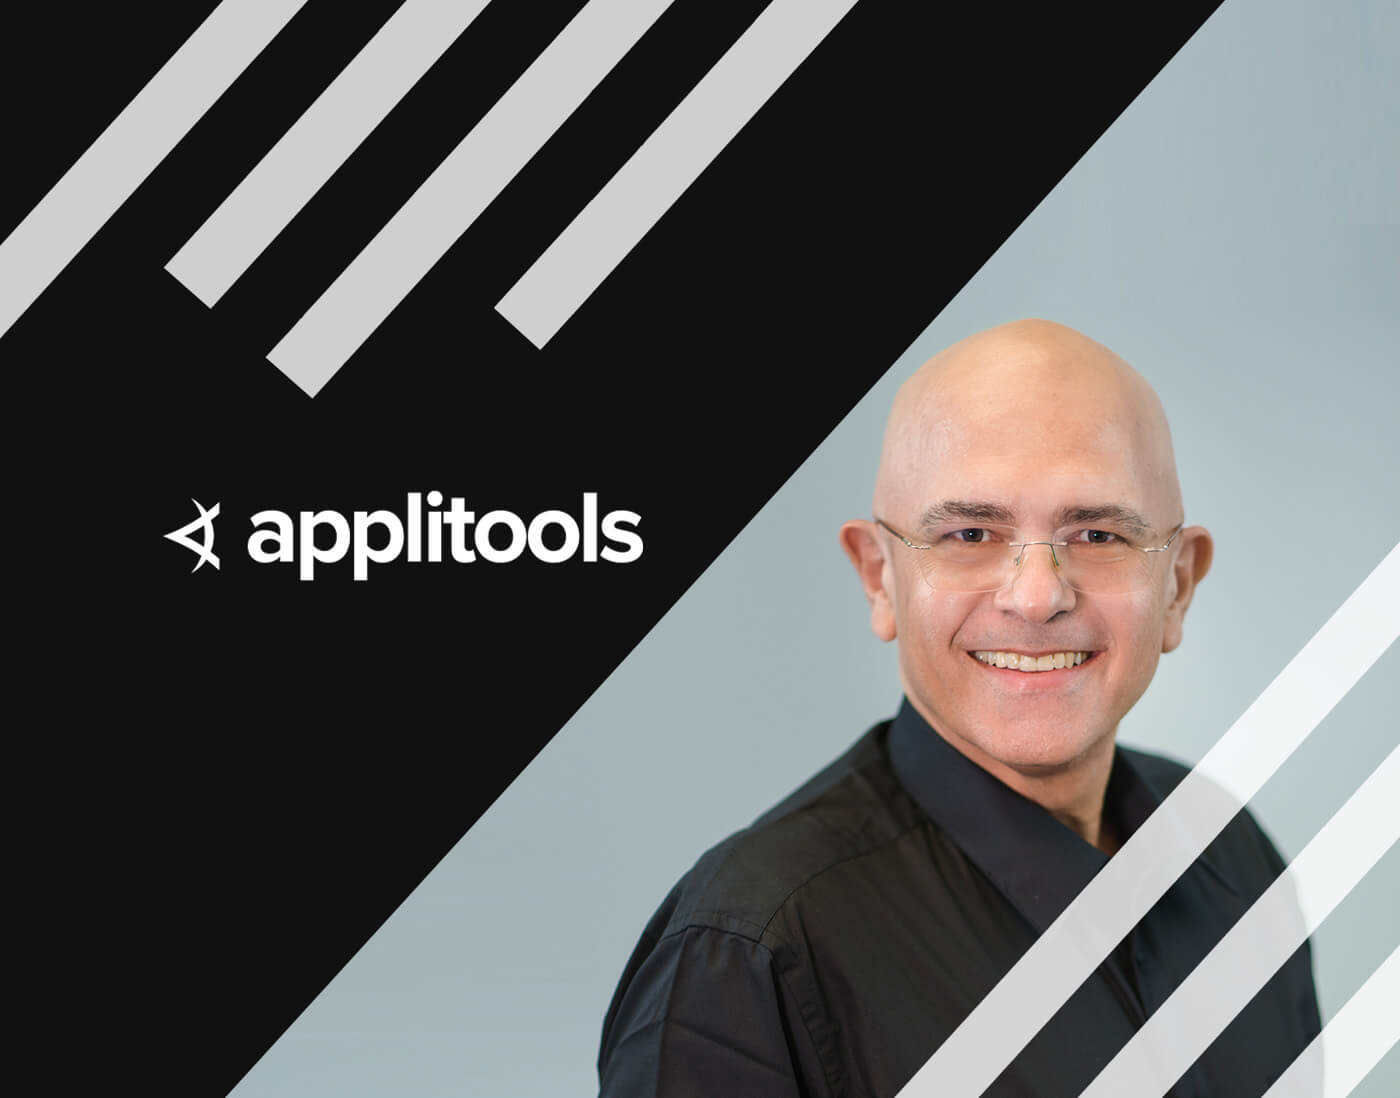 Gil Sever - CEO and Co-Founder of Applitools